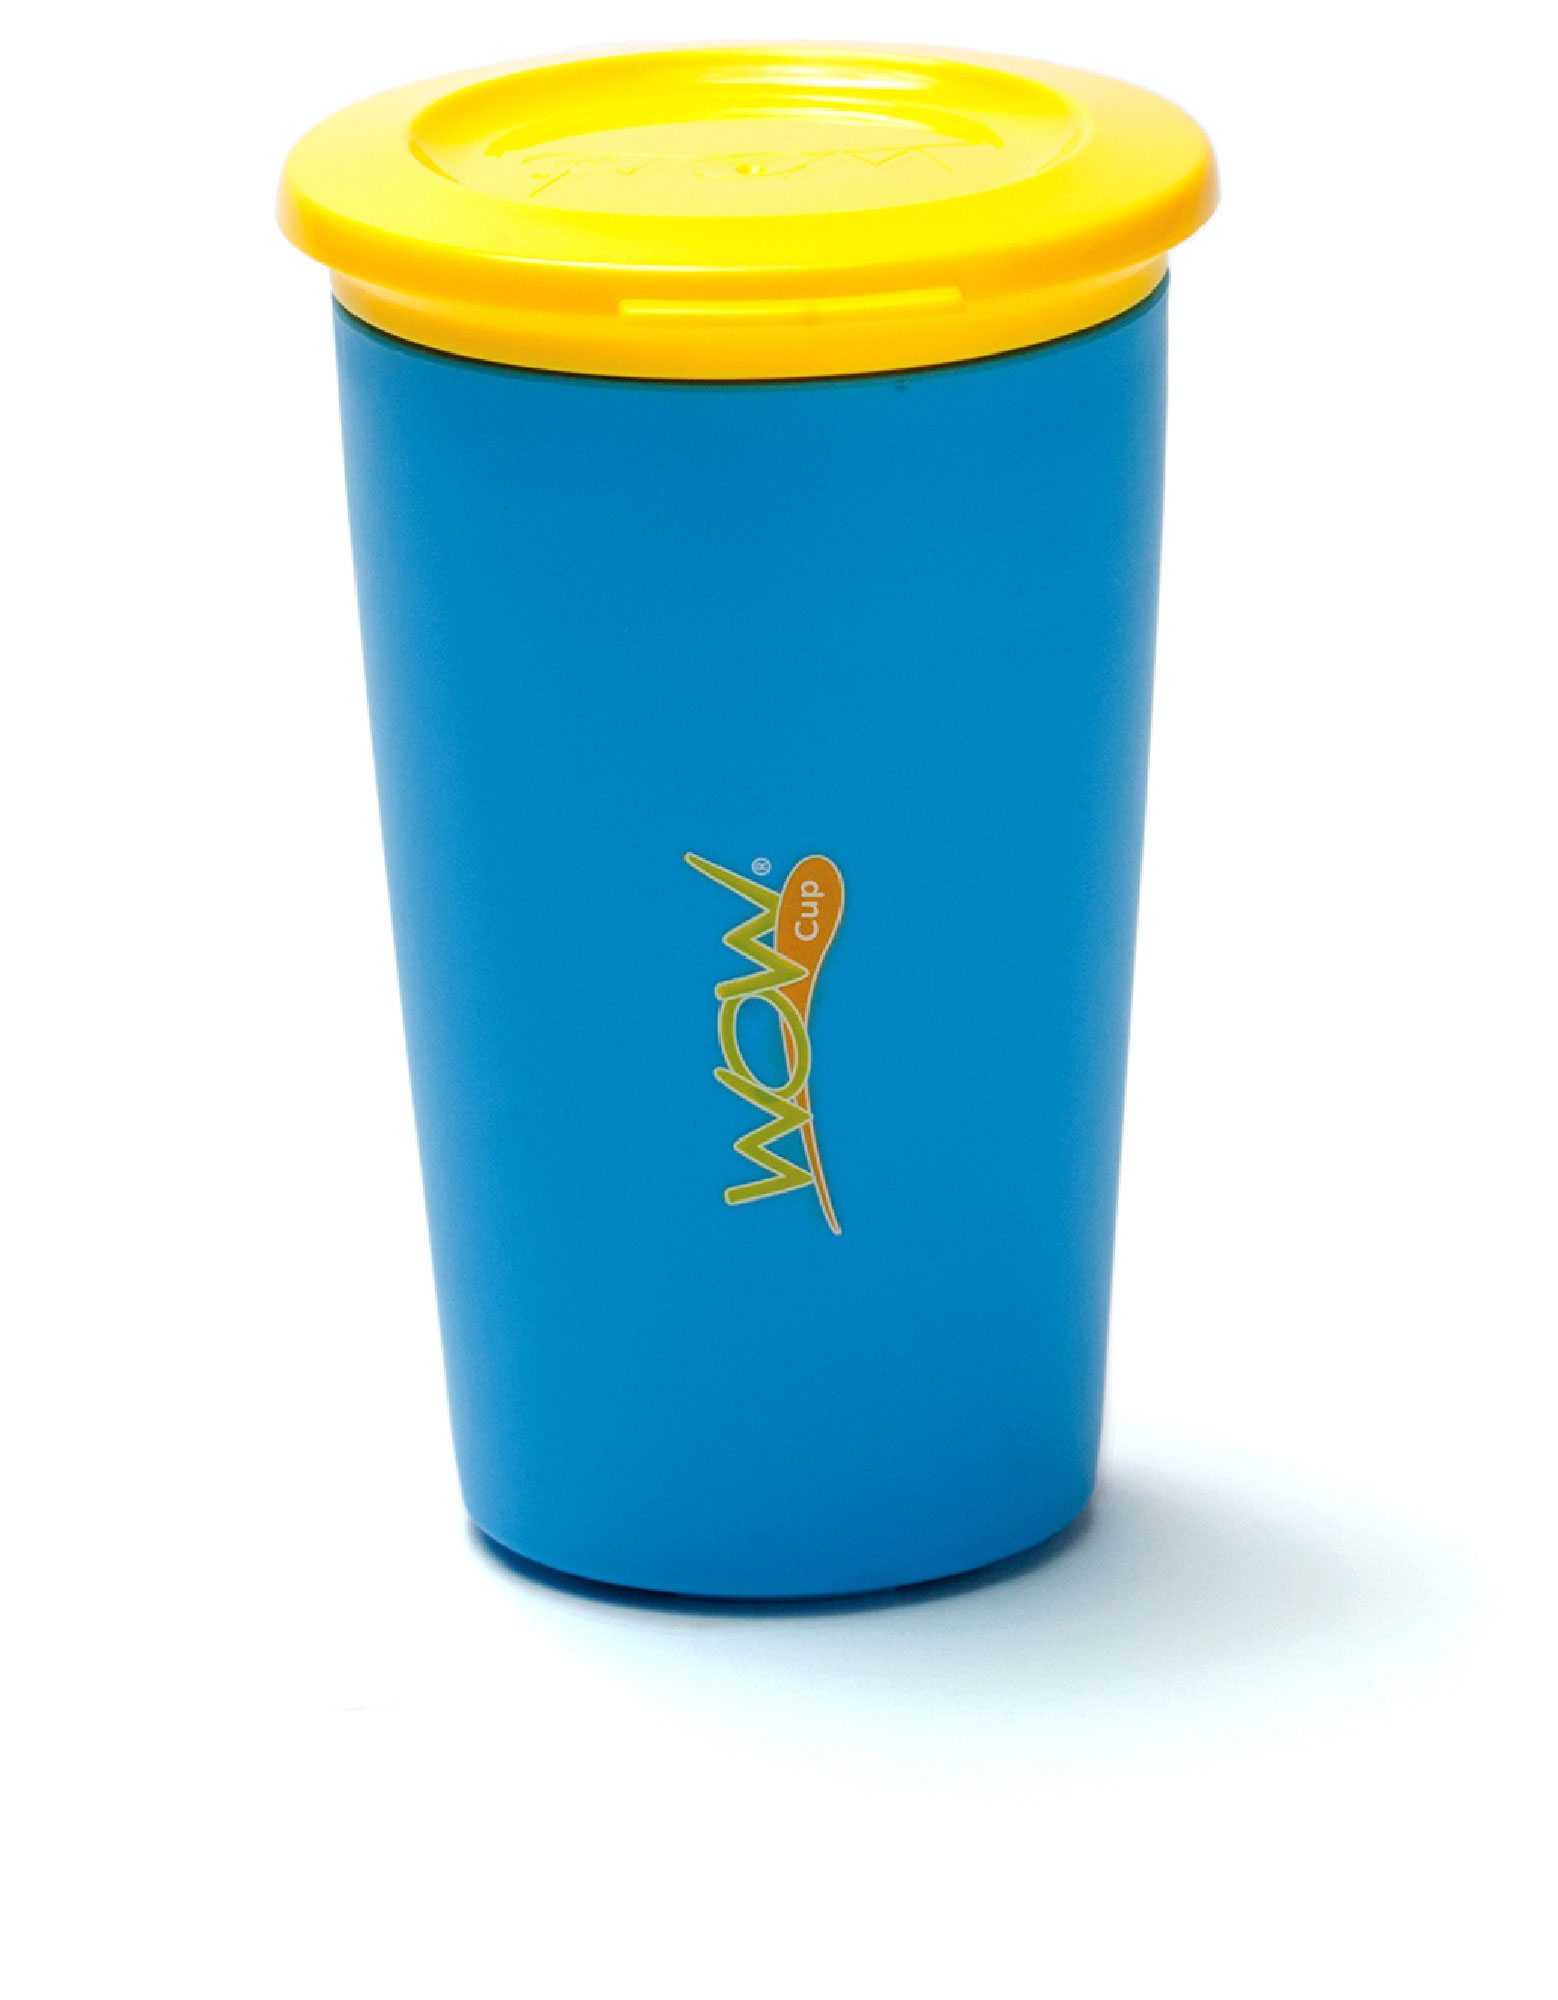 Wow Gear Wow Cup For Kids Blue Cup / Yellow Lid 266 ml